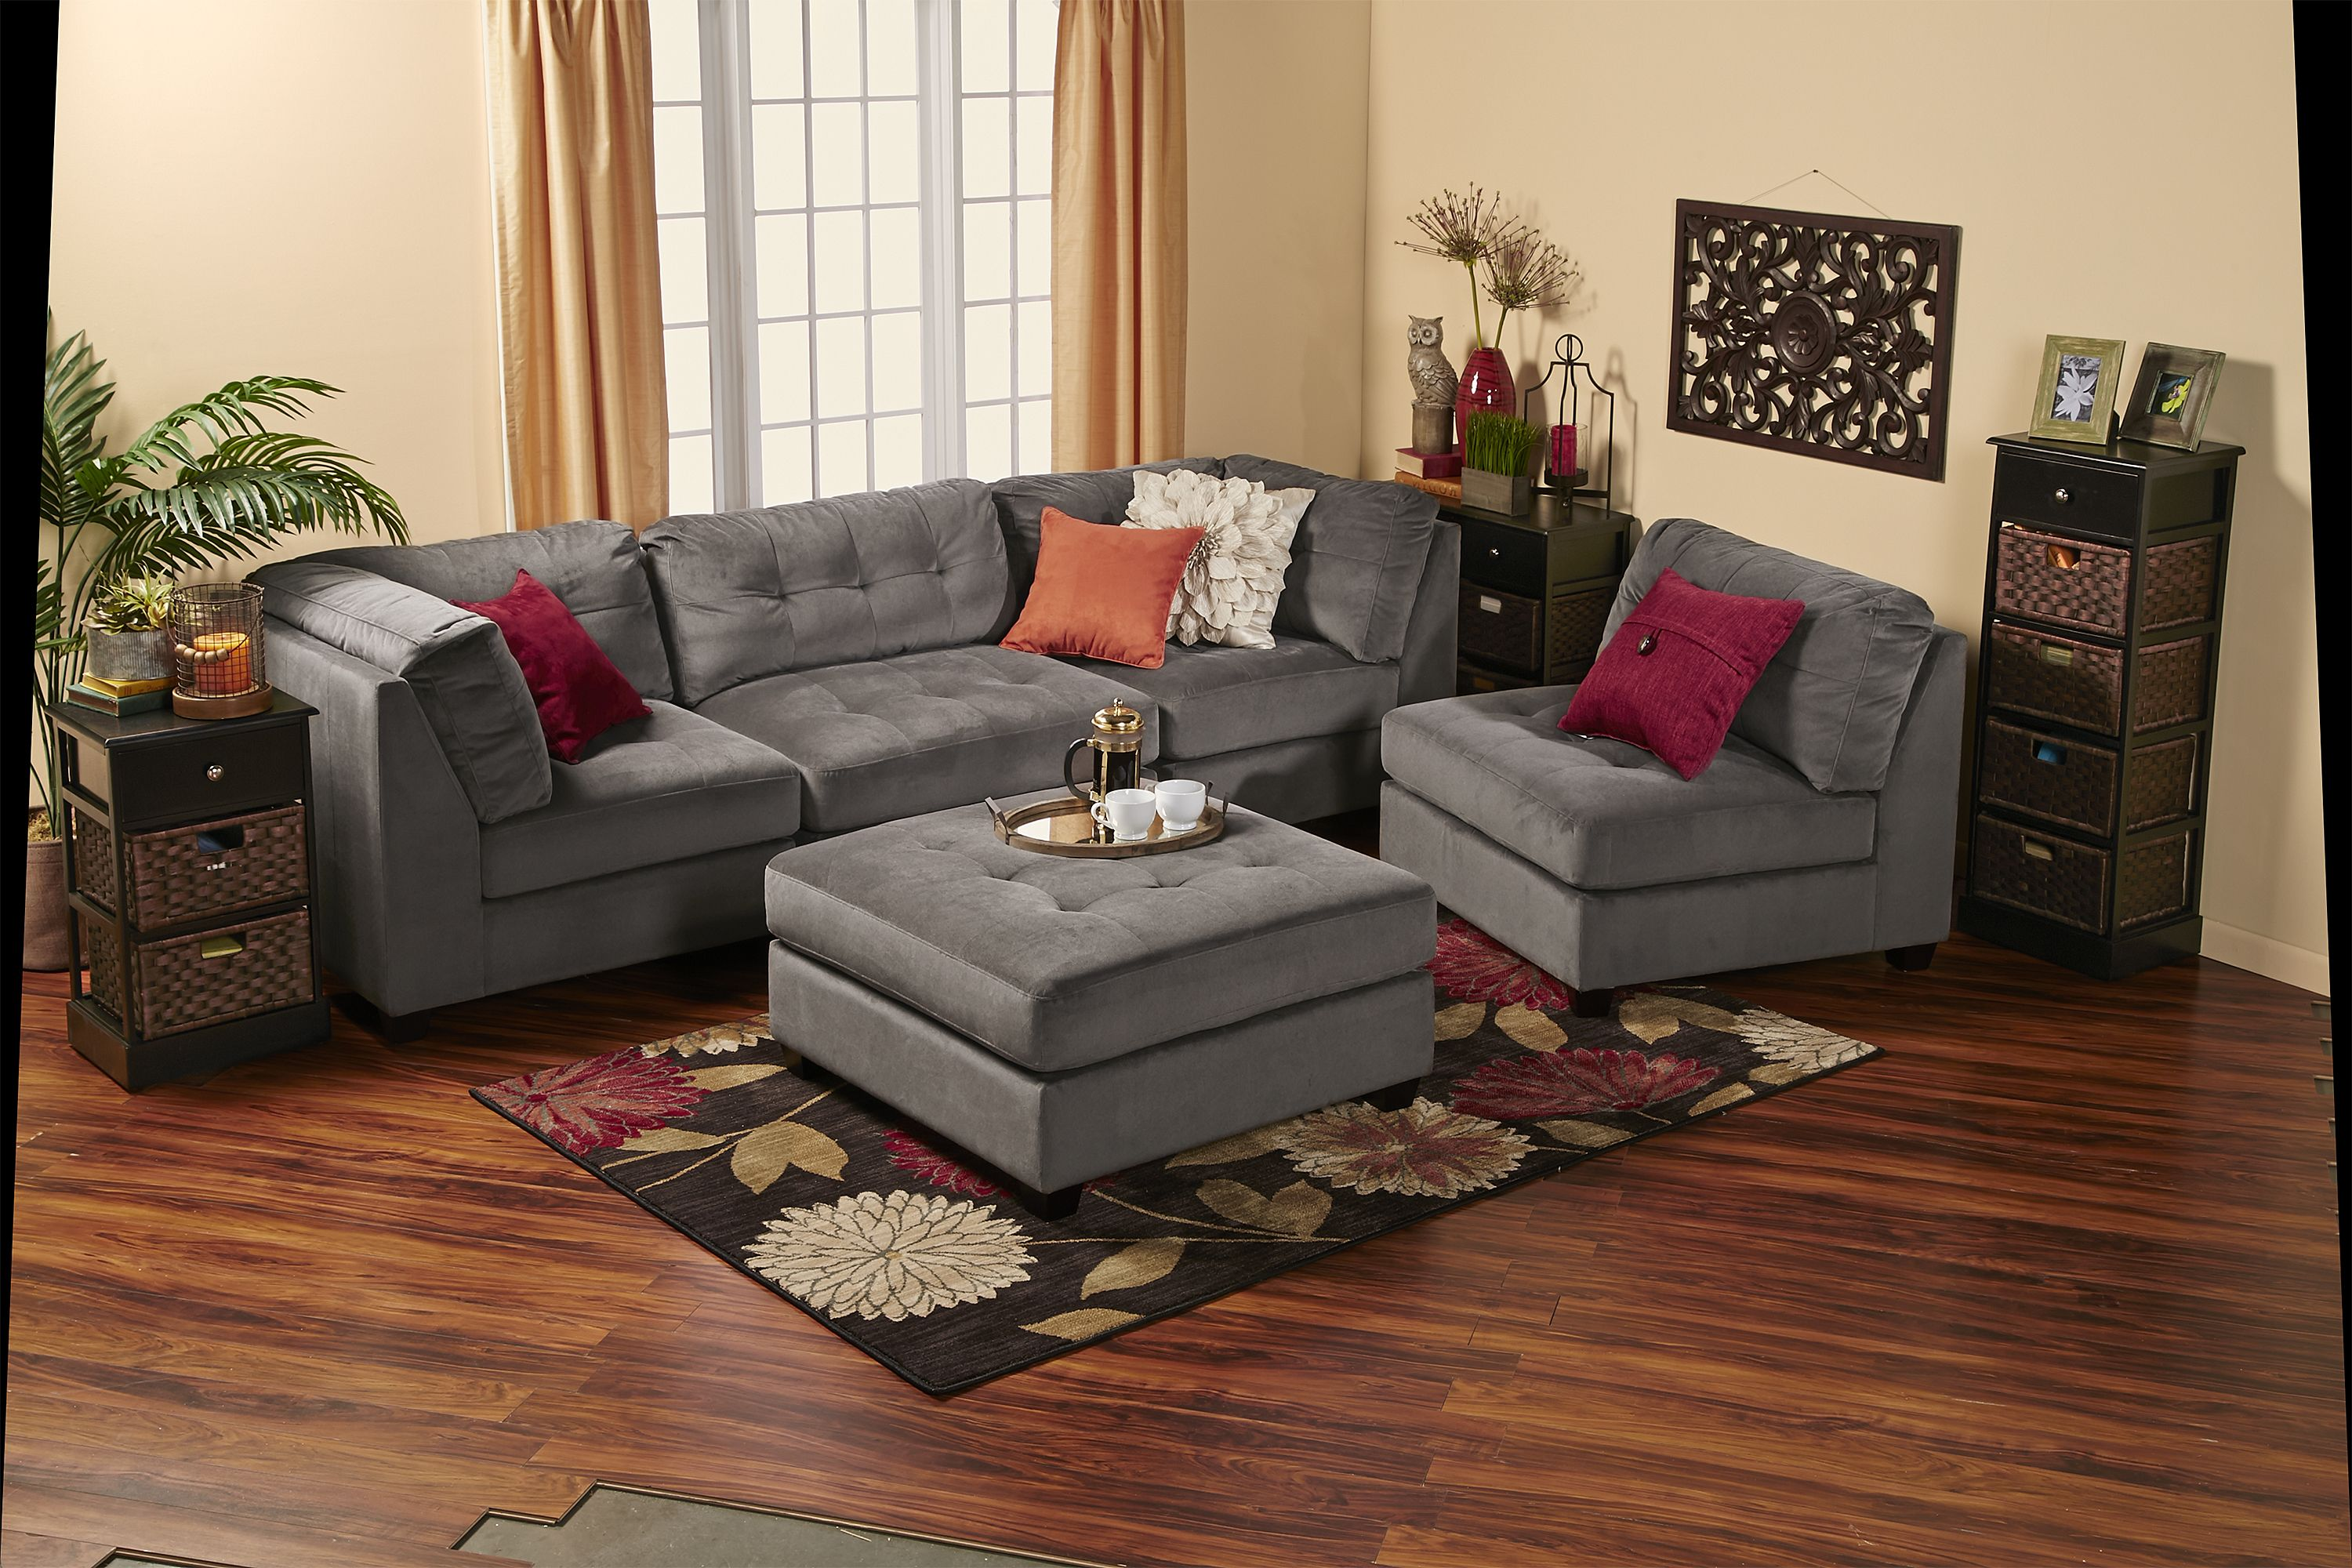 Fred Meyer Truckload Furniture Event Couches Under 300 5 Pc Dining Set 143 99 More In 2020 Furniture Patio Furniture For Sale Interior Design Bedroom